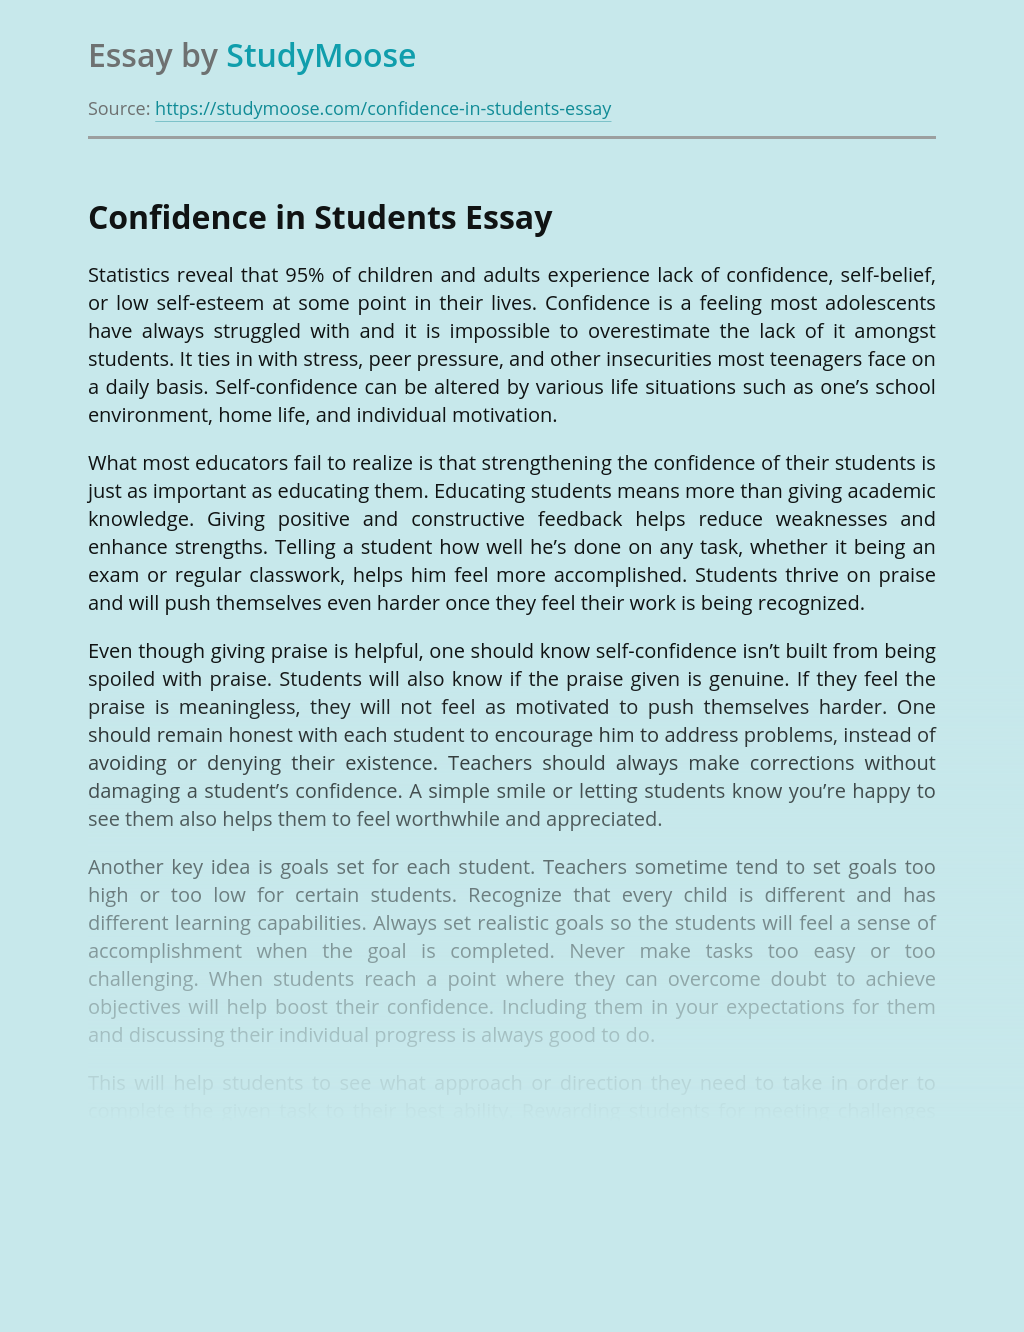 Confidence in Students